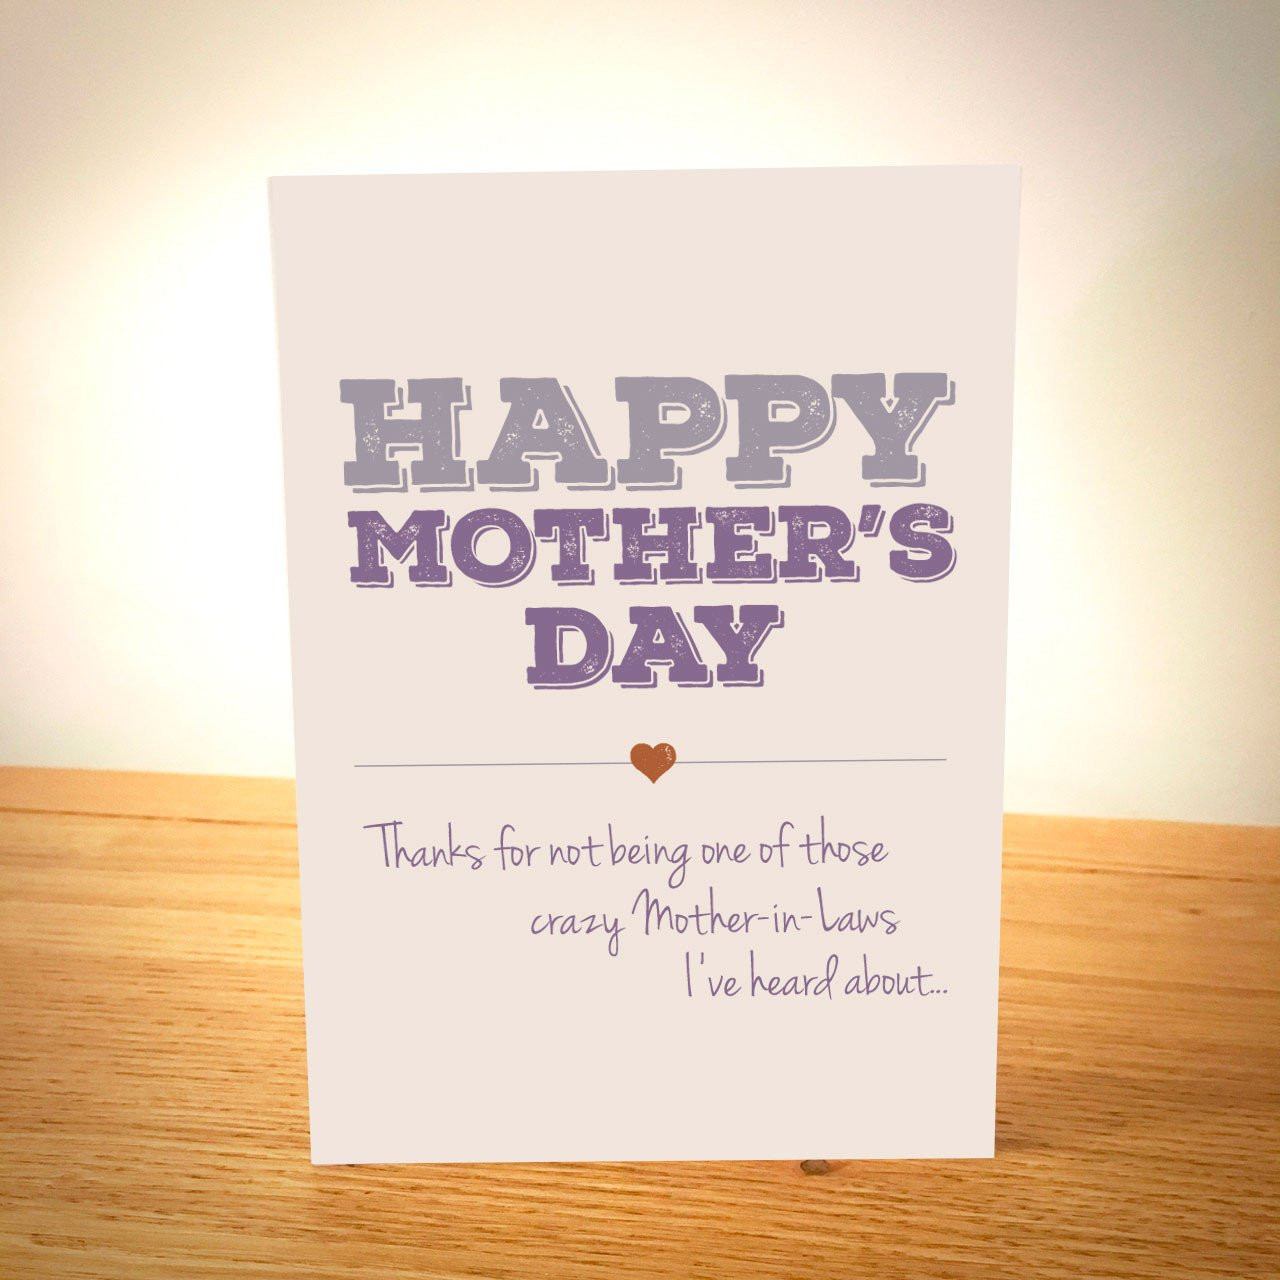 Happy Mothers Day Mother In Law Quotes  Happy Mother s Day Card Crazy Mother in Law